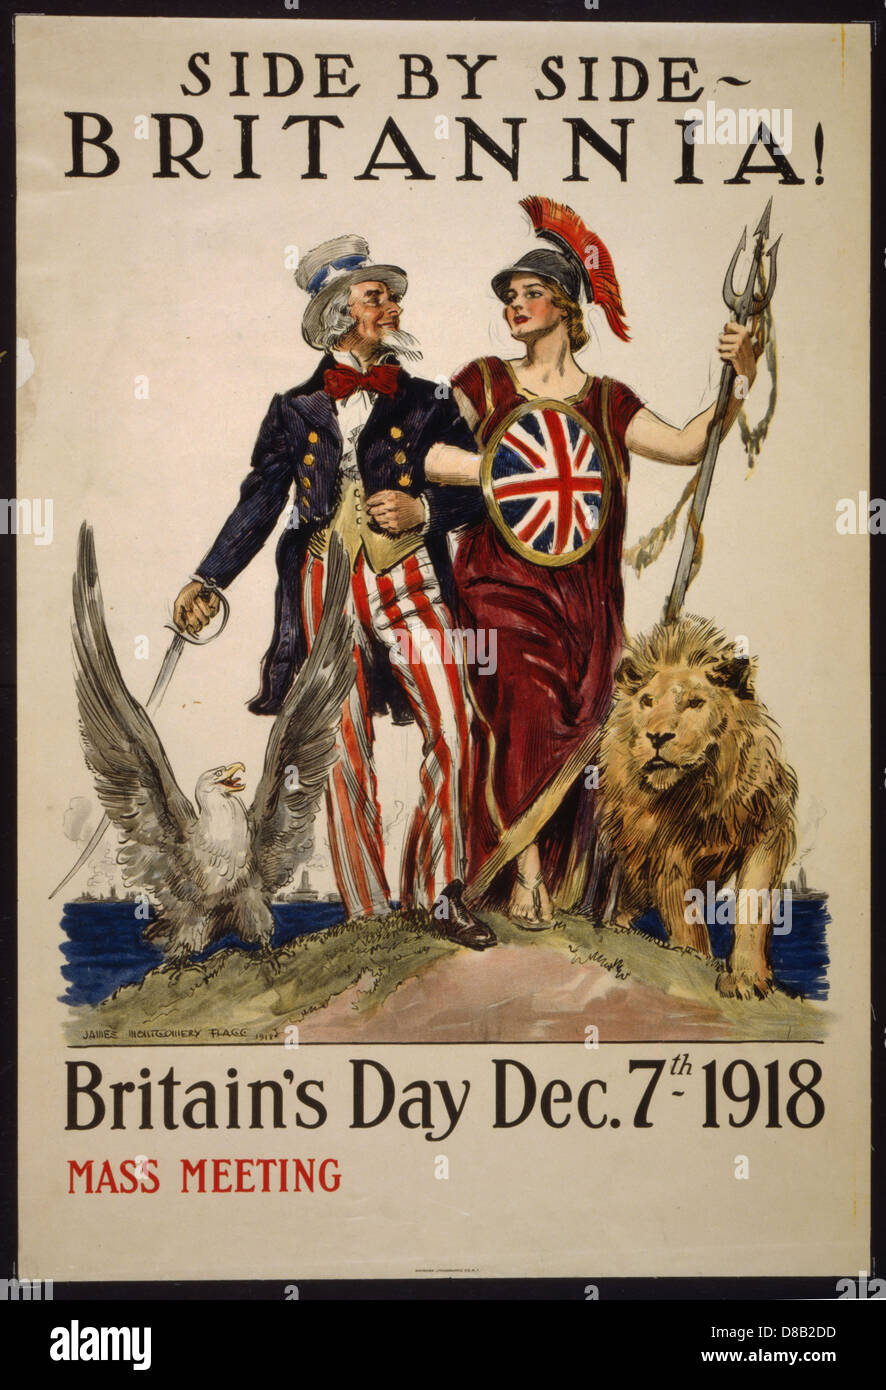 side by side britannia britain s day uncle sam 1918 uncle sam